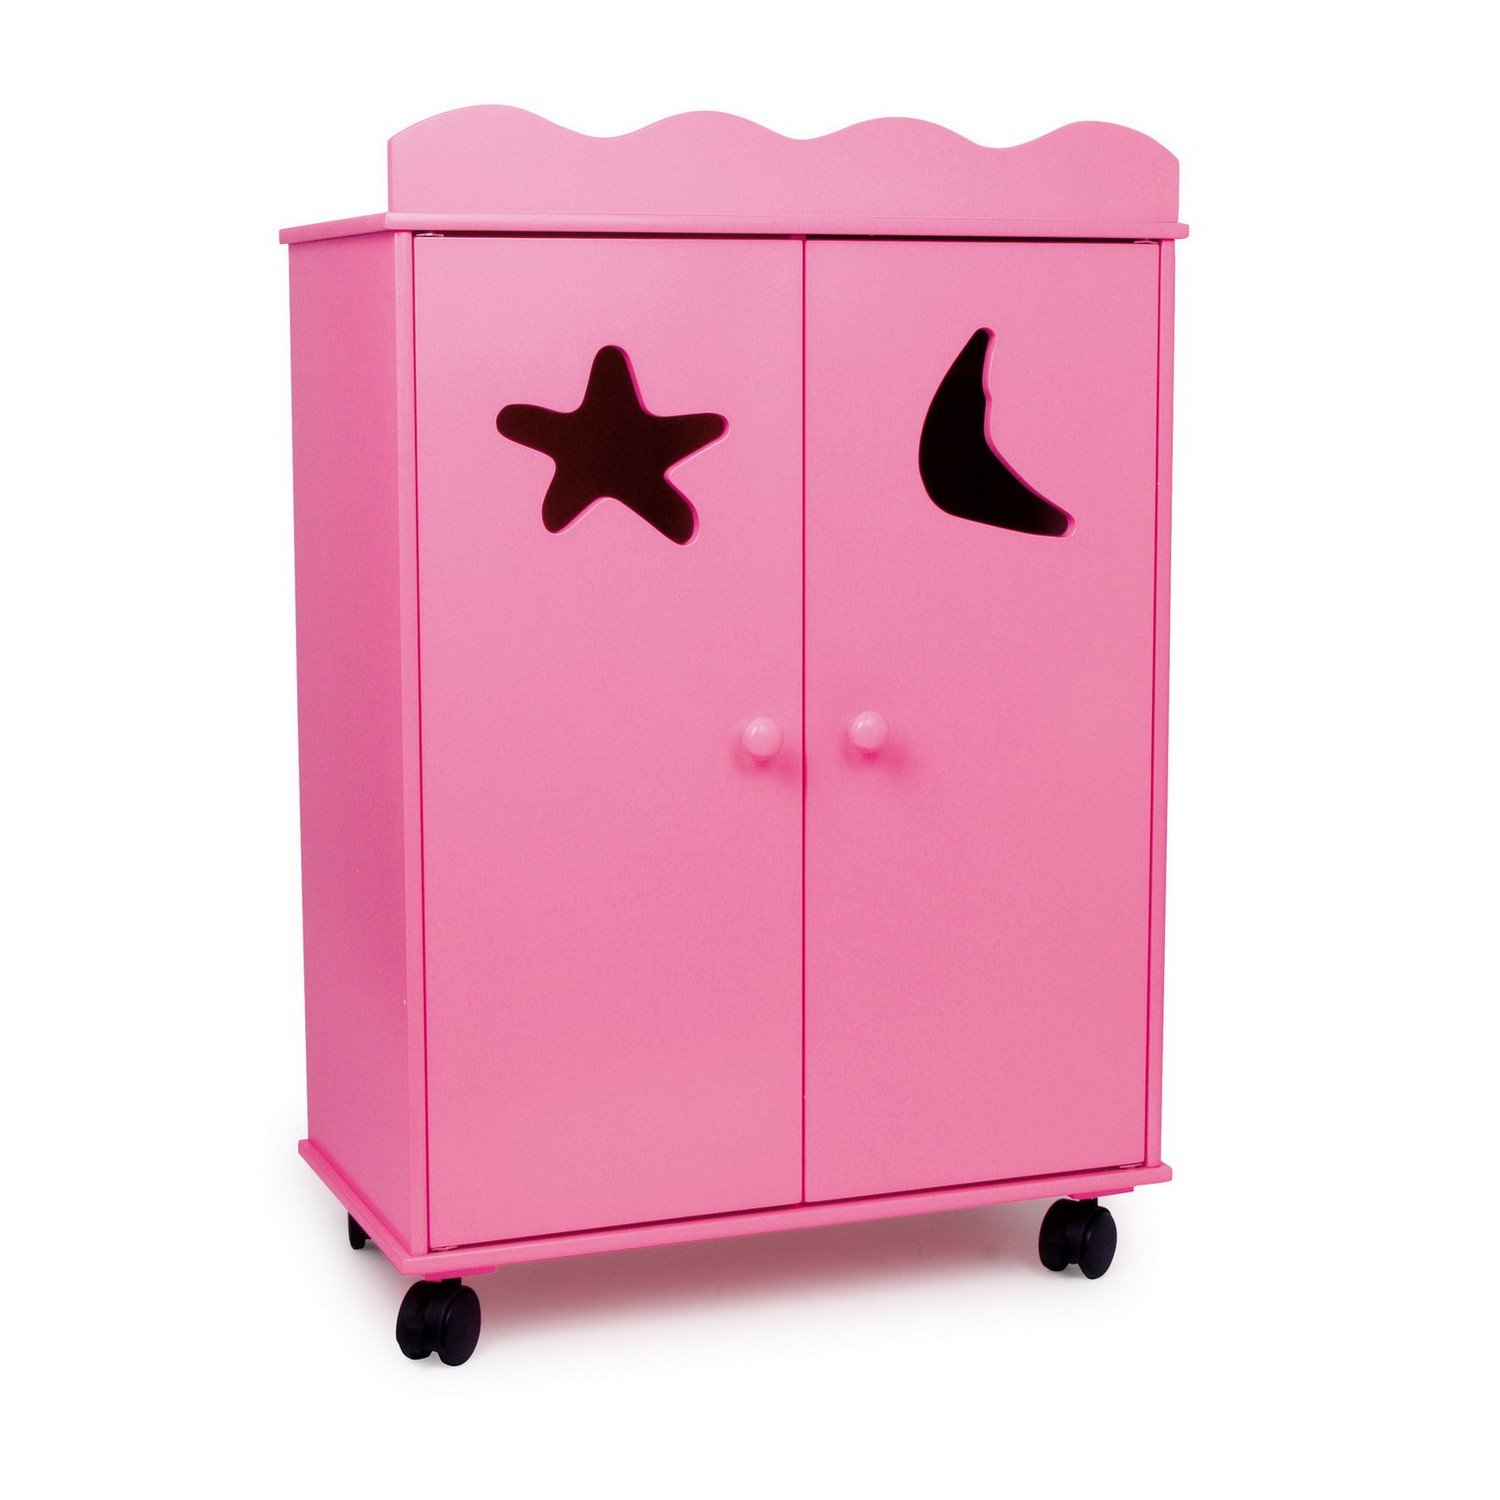 puppen kleiderschrank pink mit rollen pink 1 st ck spielzeug kinderzimmer spielecke. Black Bedroom Furniture Sets. Home Design Ideas